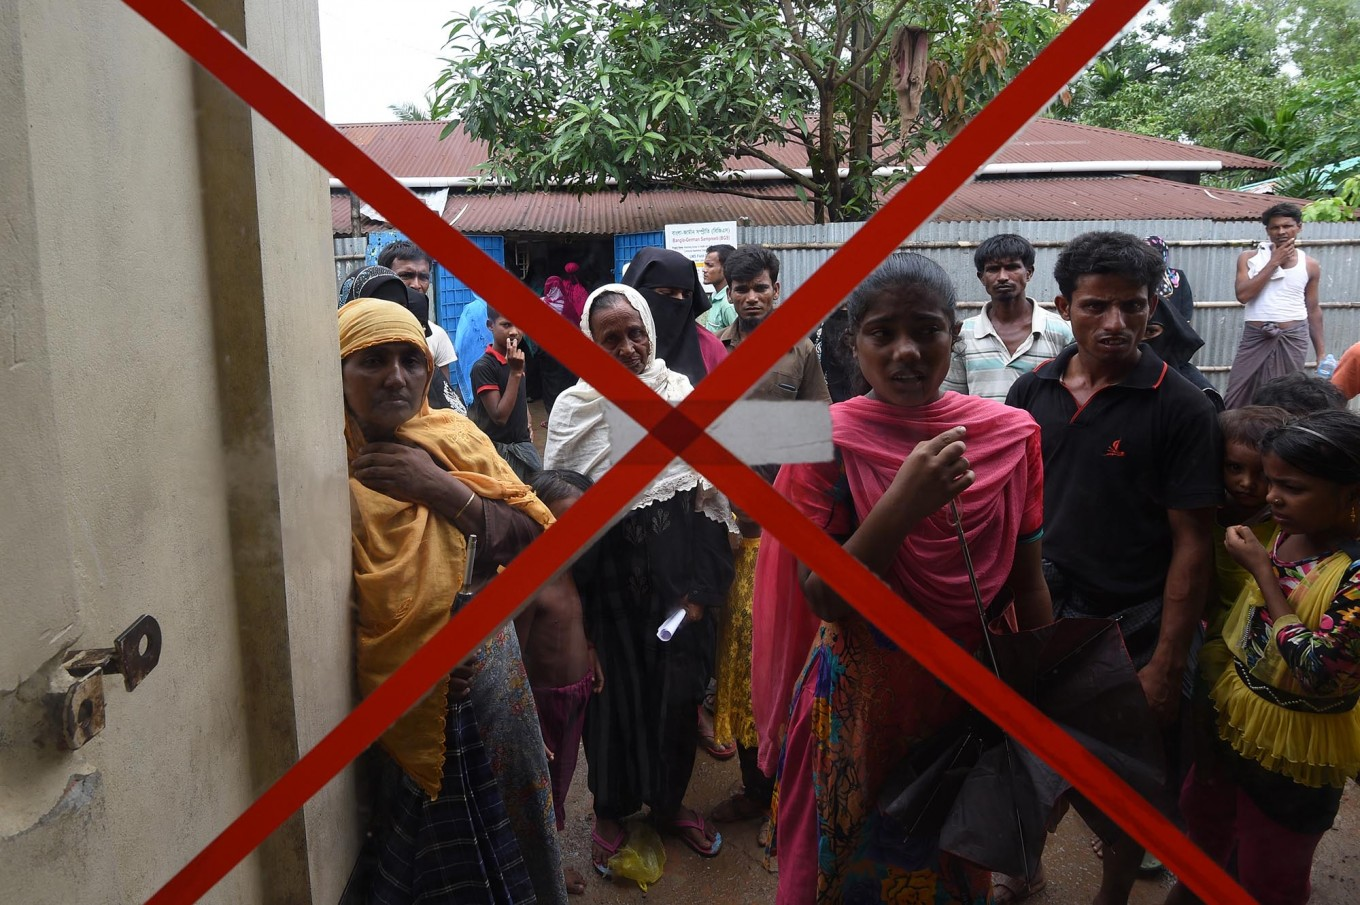 """Rohingya Muslim refugees wait for a consultation outside a clinic run by the International Organisation for Migration (IOM) in Leda refugee camp near the Bangladeshi town of Teknaf on September 18, 2017. Pressure grew on Myanmar September 18 as a rights group urged world leaders to impose sanctions on its military, which is accused of driving out more than 410,000 Rohingya Muslims in an orchestrated """"ethnic cleansing"""" campaign. The exodus of Rohingya refugees from mainly Buddhist Myanmar to neighbouring Bangladesh has sparked a humanitarian emergency. Aid groups are struggling to provide relief to a daily stream of new arrivals, more than half of whom are children. AFP/ Dominique Faget"""